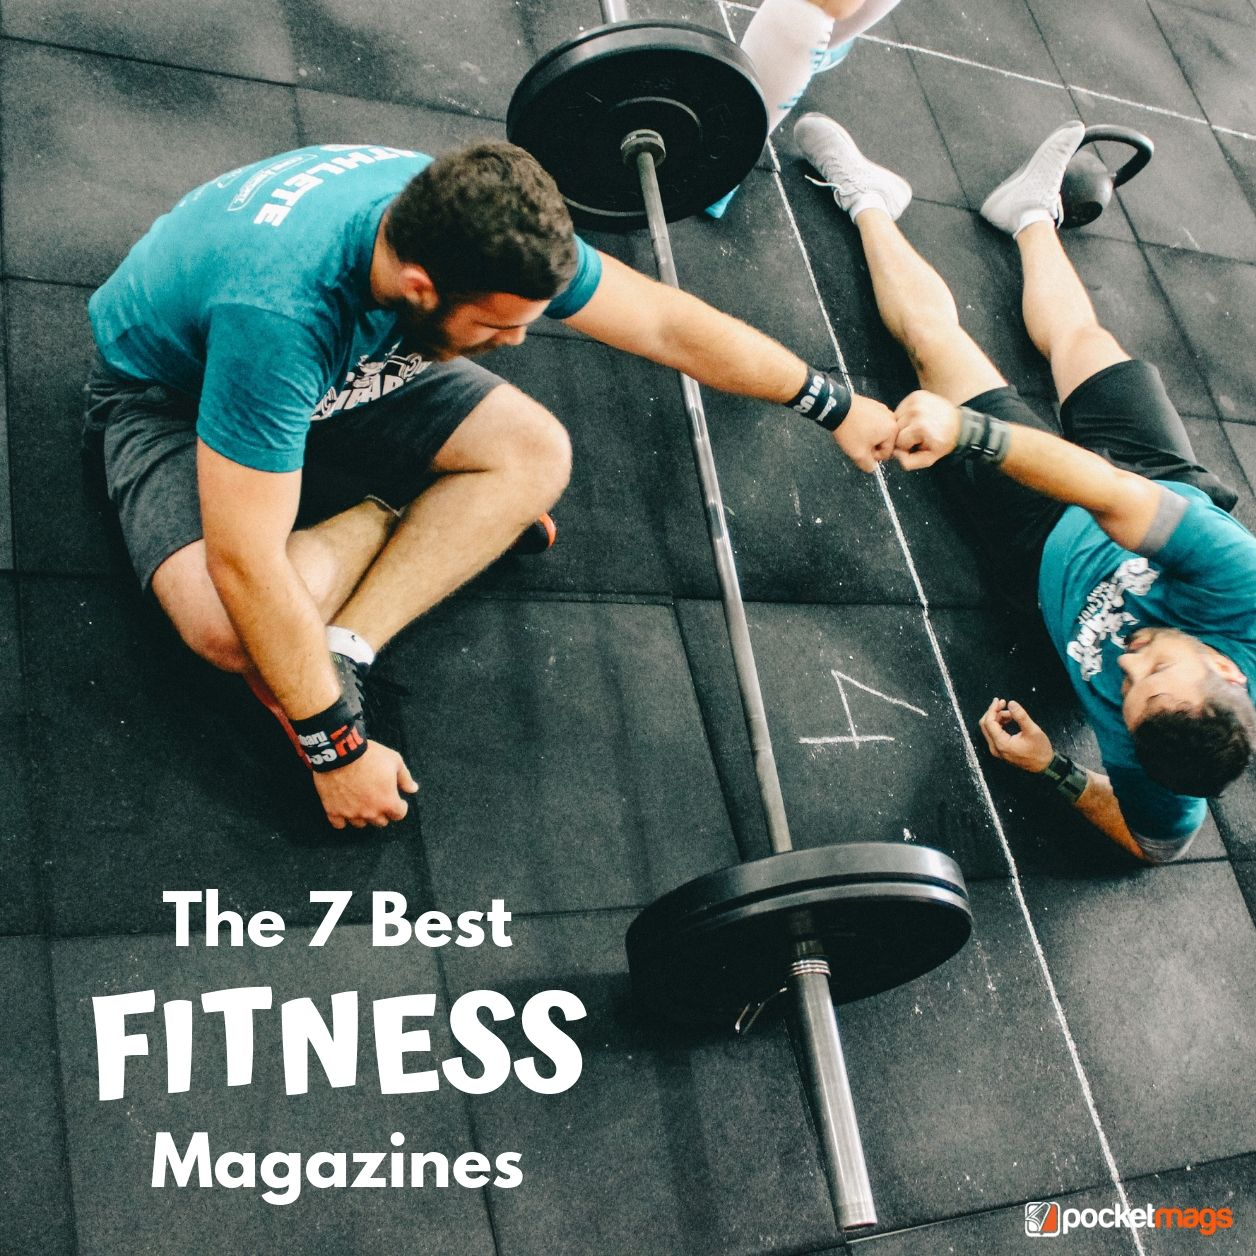 The 7 Best Fitness Magazines